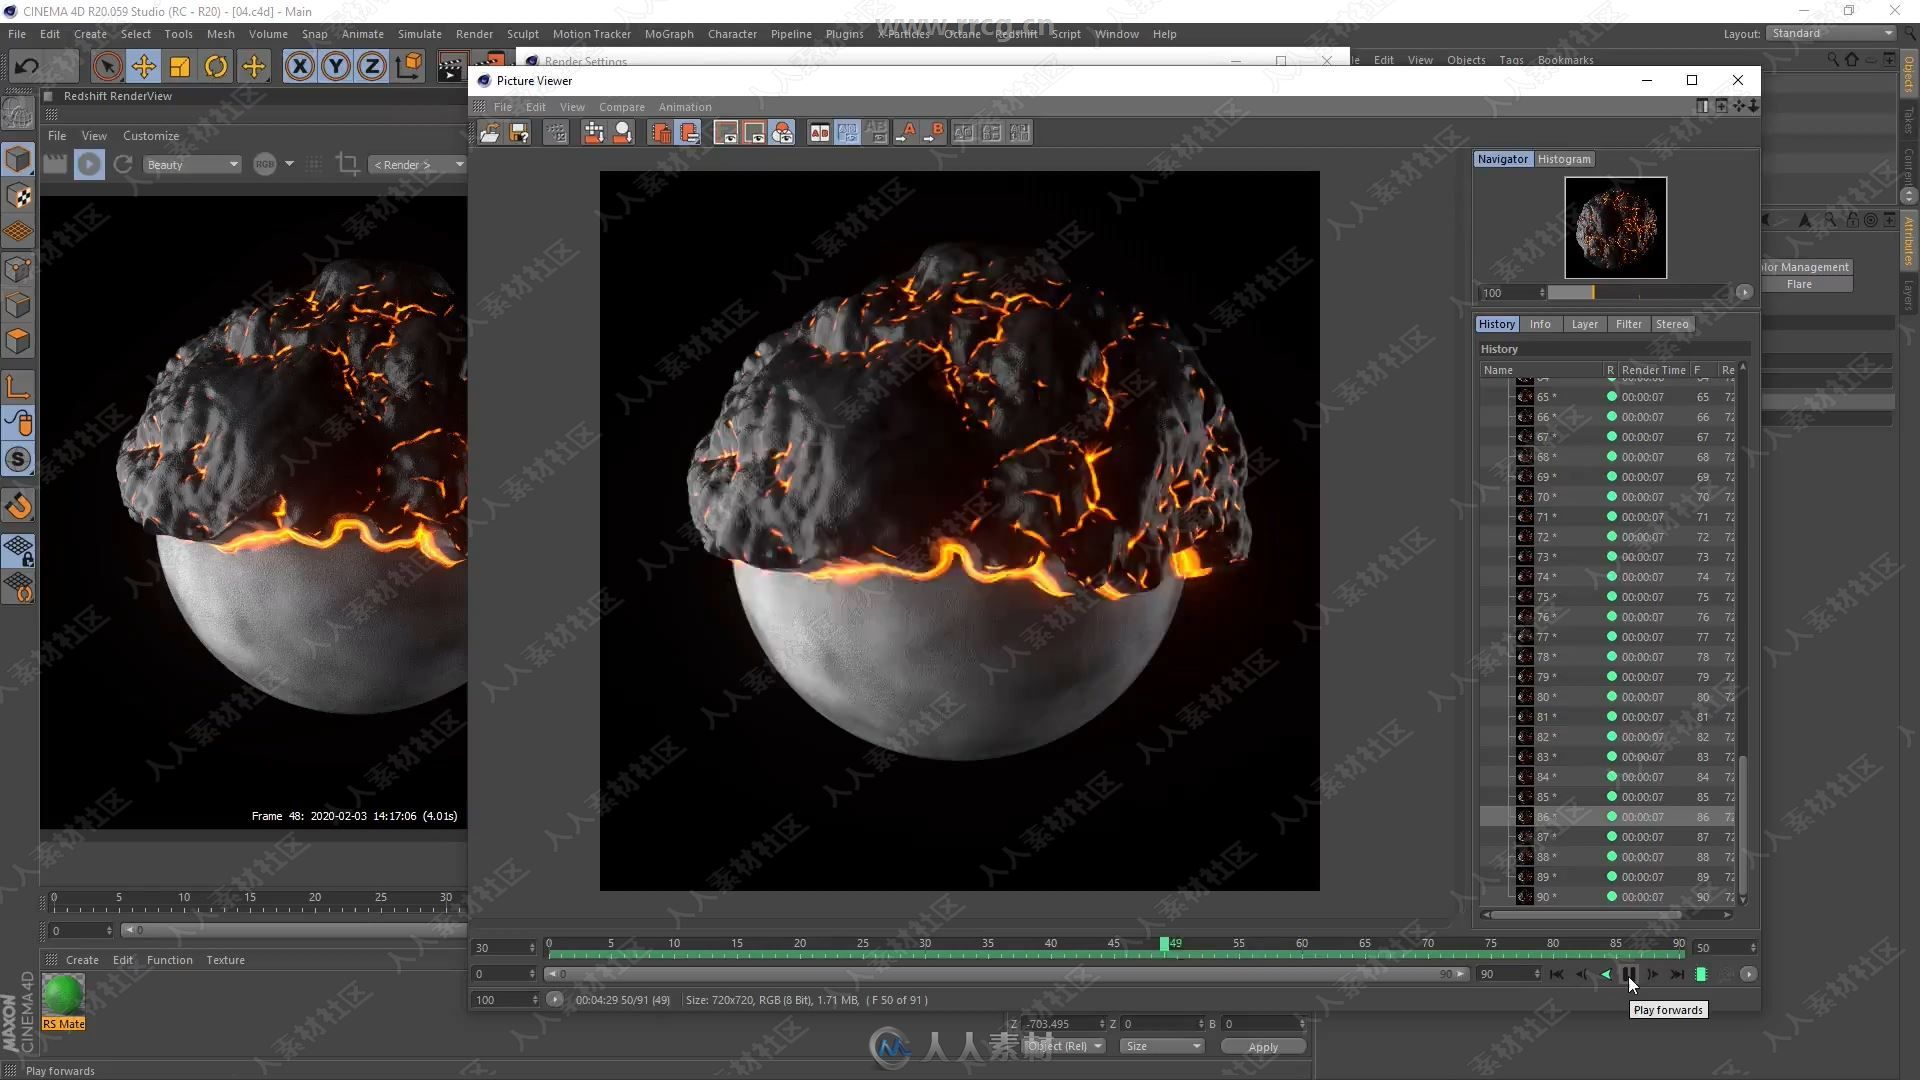 382477-5 - 04 - Finishing Materials and Render - Cinema 4D (R20 ) & Redshift W.jpg